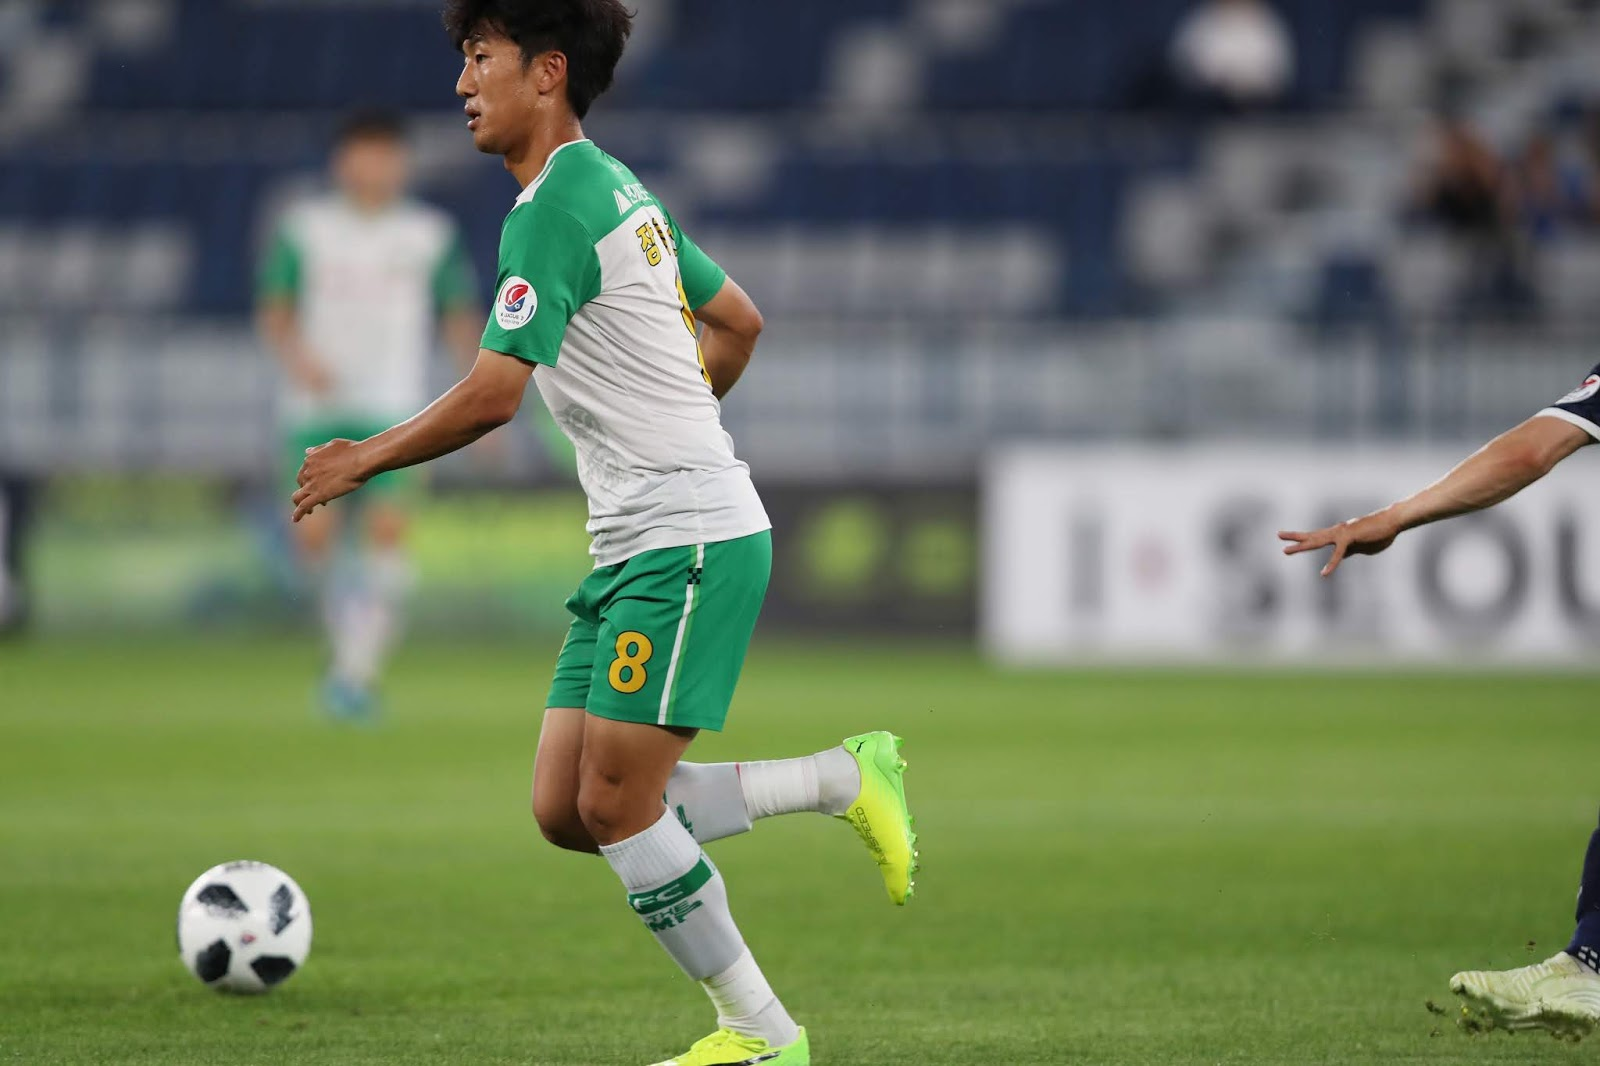 Preview: Ansan Greeners vs Daejeon Citizen K League 2